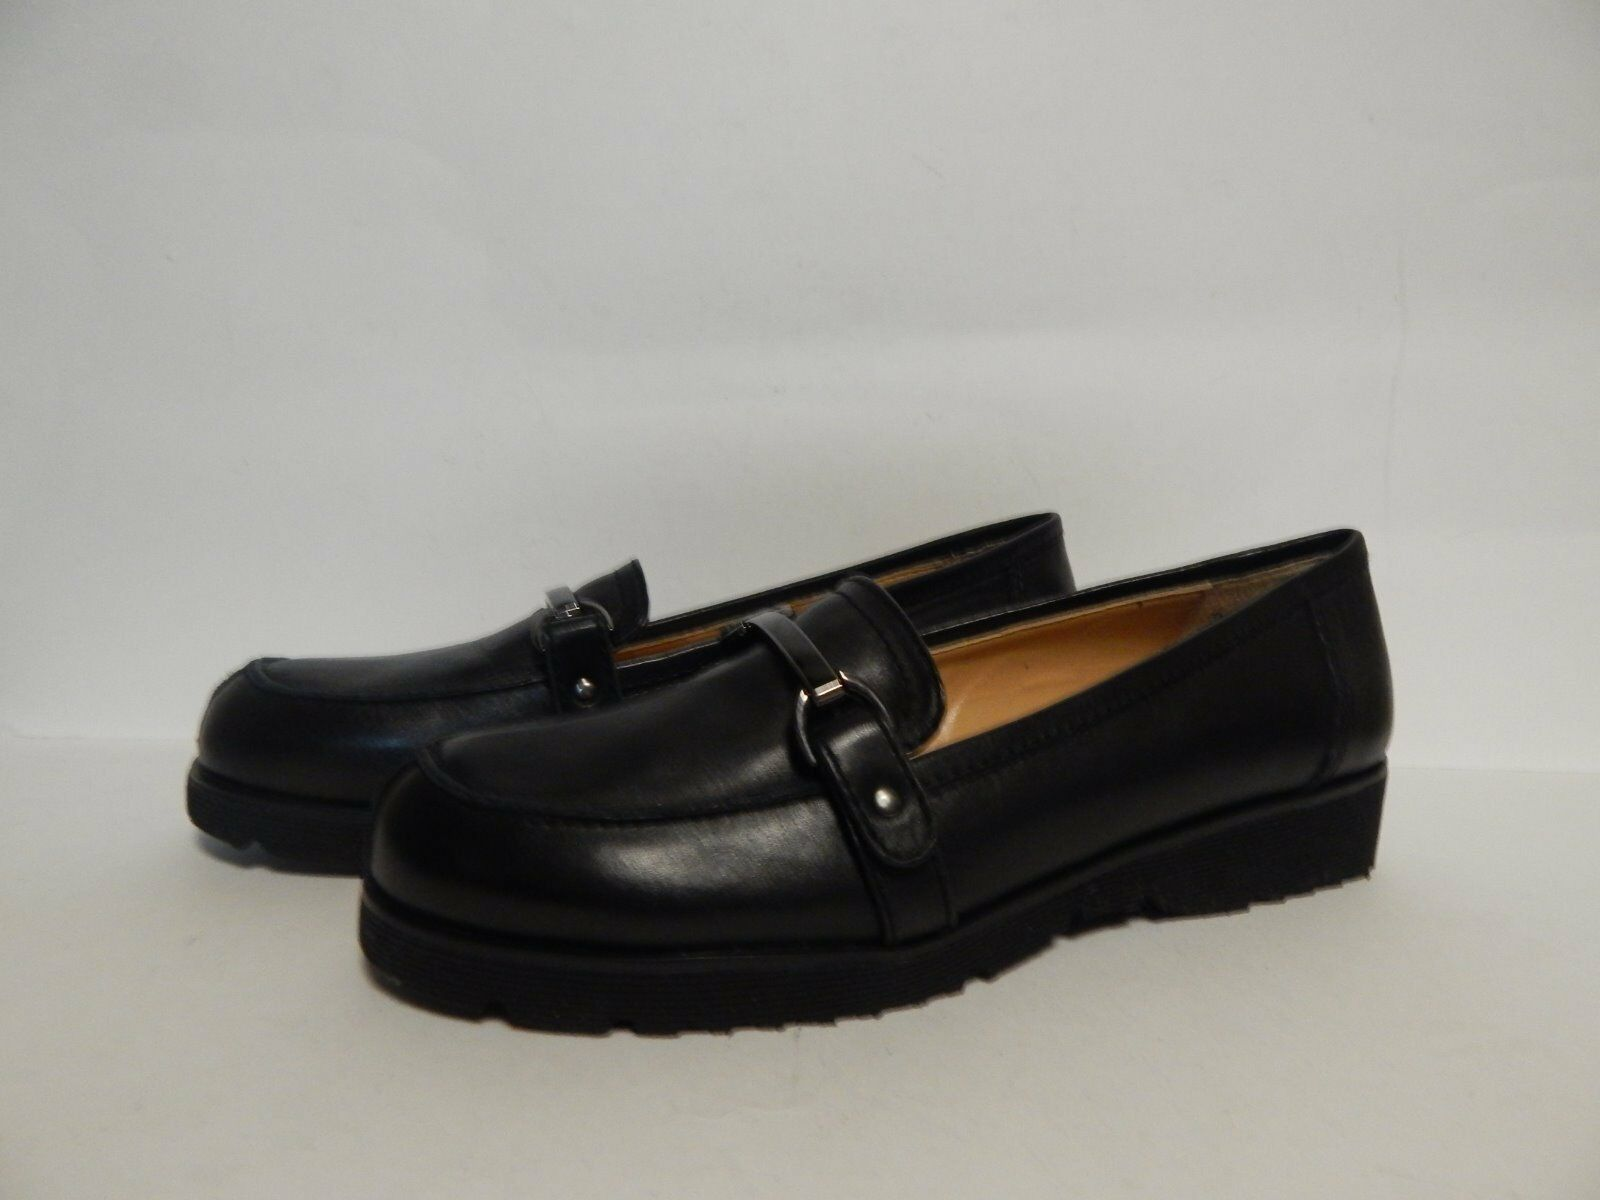 Elie Tahari Berry Loafer 8.5 M nero  New without Box